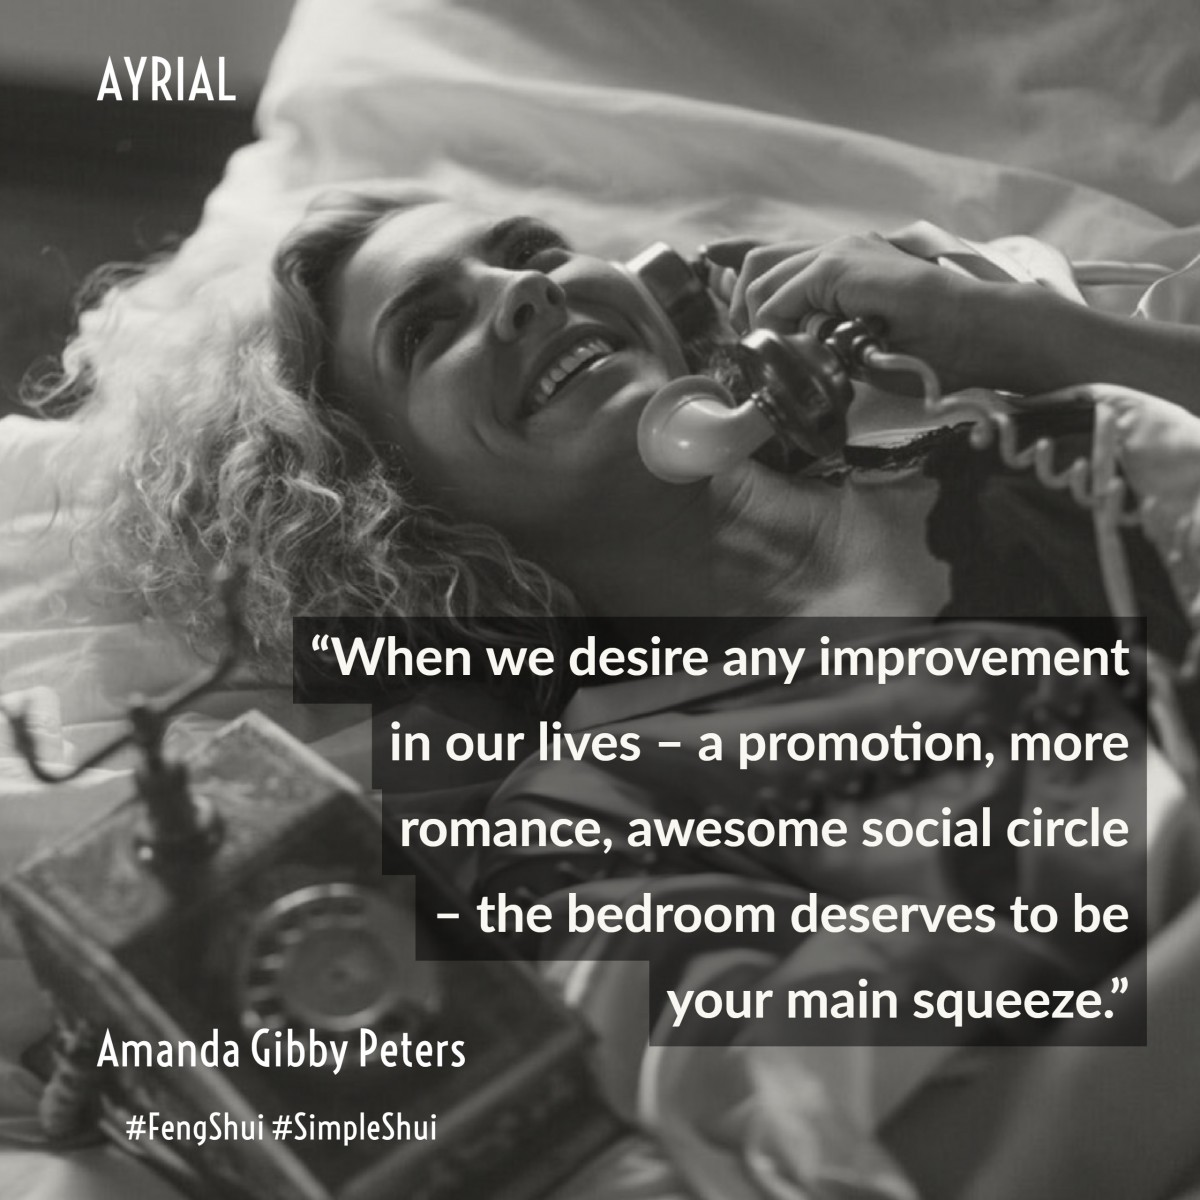 AYRIAL - BEDROOM FENG SHUI BY AMANDA GIBBY PETERS